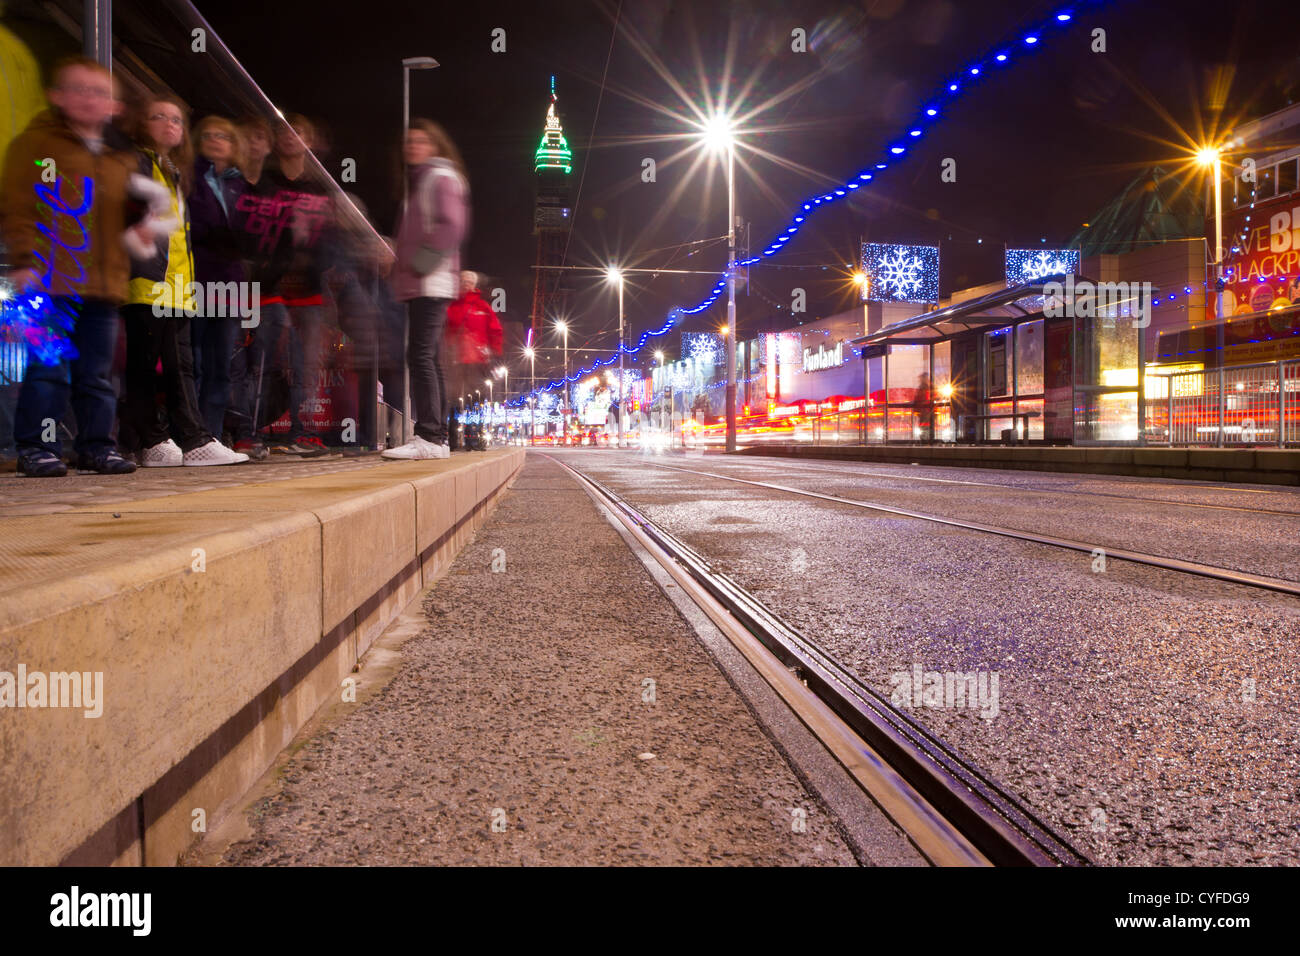 People waiting from a tram during the Blackpool illuminations Stock Photo